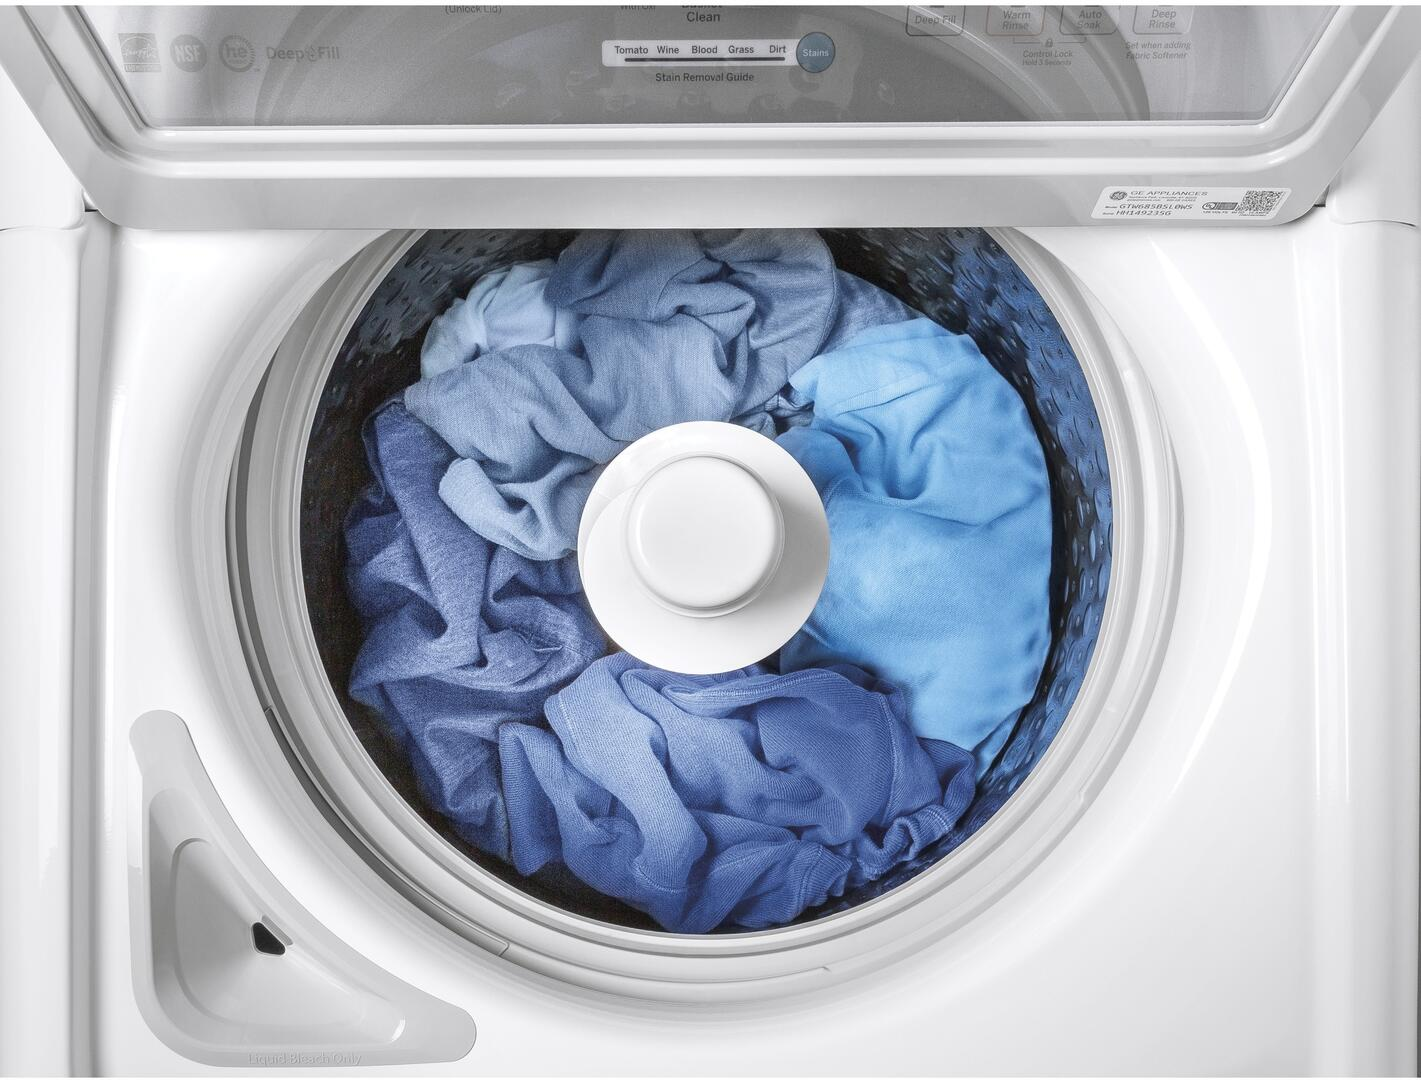 GE GTW685BSLWS 27 Inch 4.5 cu. ft. Top Load Washer, in White ... on ge washer repair guide, ge washer oil leak, ge spacemaker microwave parts diagram, ge washer hose, ge profile dishwasher diagram, ge washer fuse, ge washer tools, ge top load washer diagram, ge washer agitator repair, ge washer motor, ge front load washer diagram, ge washer model whse5240d1ww, ge washer manual, ge schematic diagrams, ge washer timer, ge washer parts, ge washer drive shaft, washing machine schematic diagram, ge washer model numbers, ge washer disassembly,